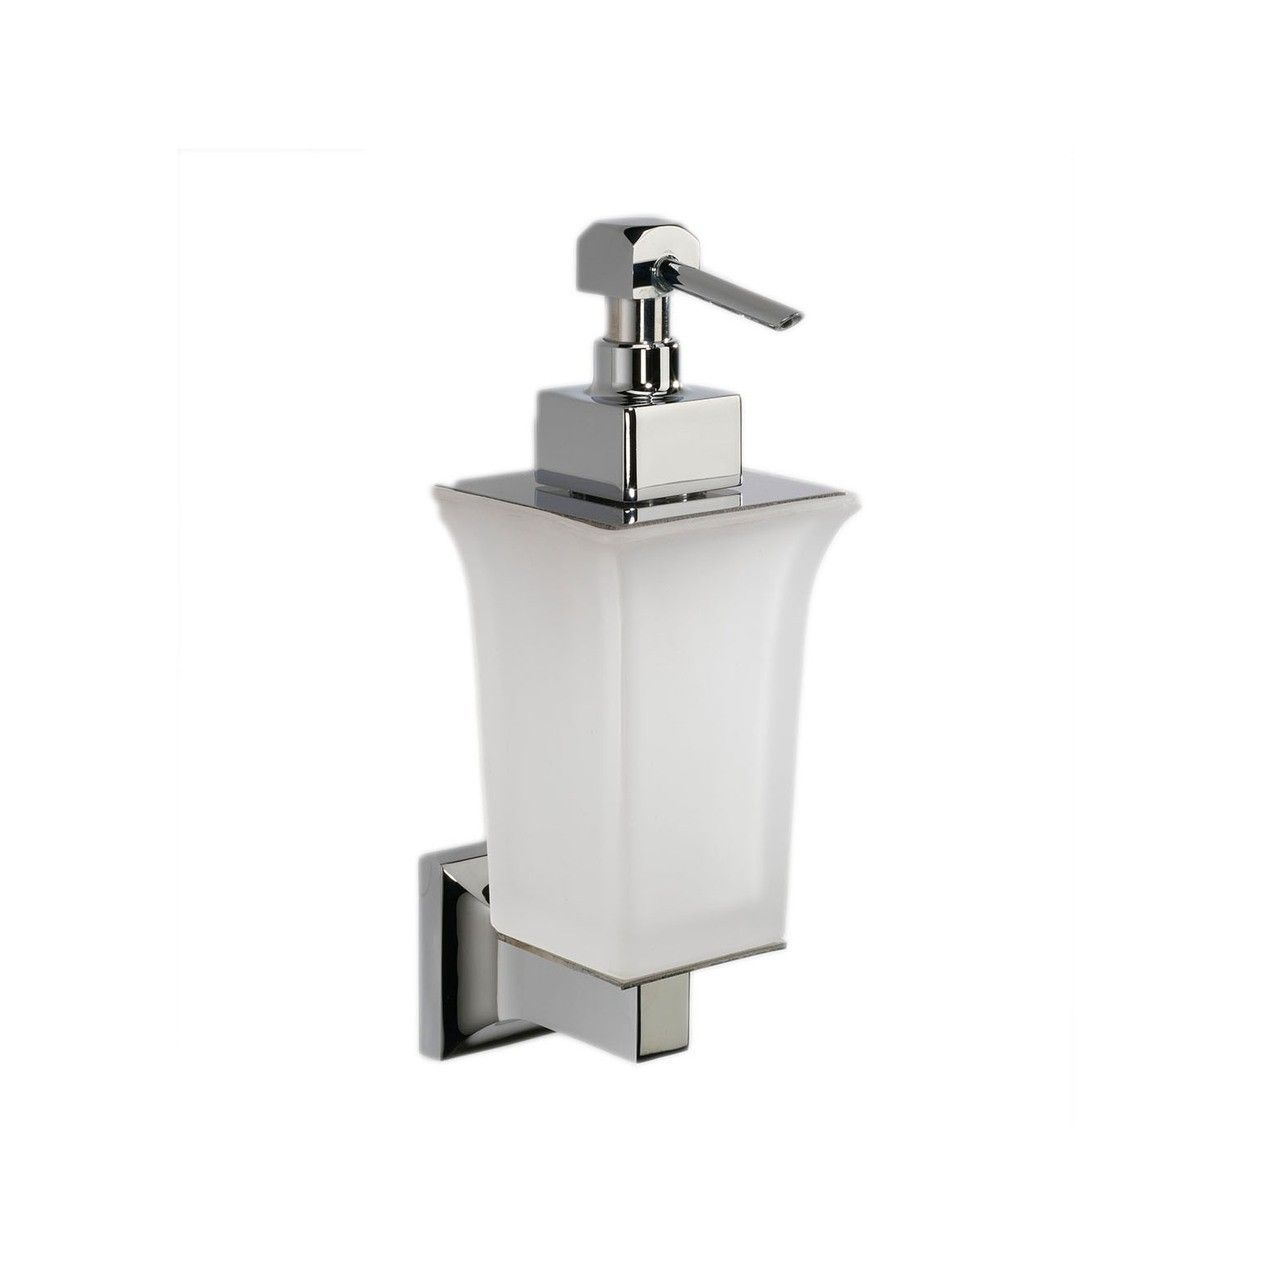 Gorgeous High End Luxurious Modern Wall Mounted Soap Dispenser In Frosted Glass And Finished In Polished Chrome Wall Mounted Soap Dispenser Soap Dispenser Soap